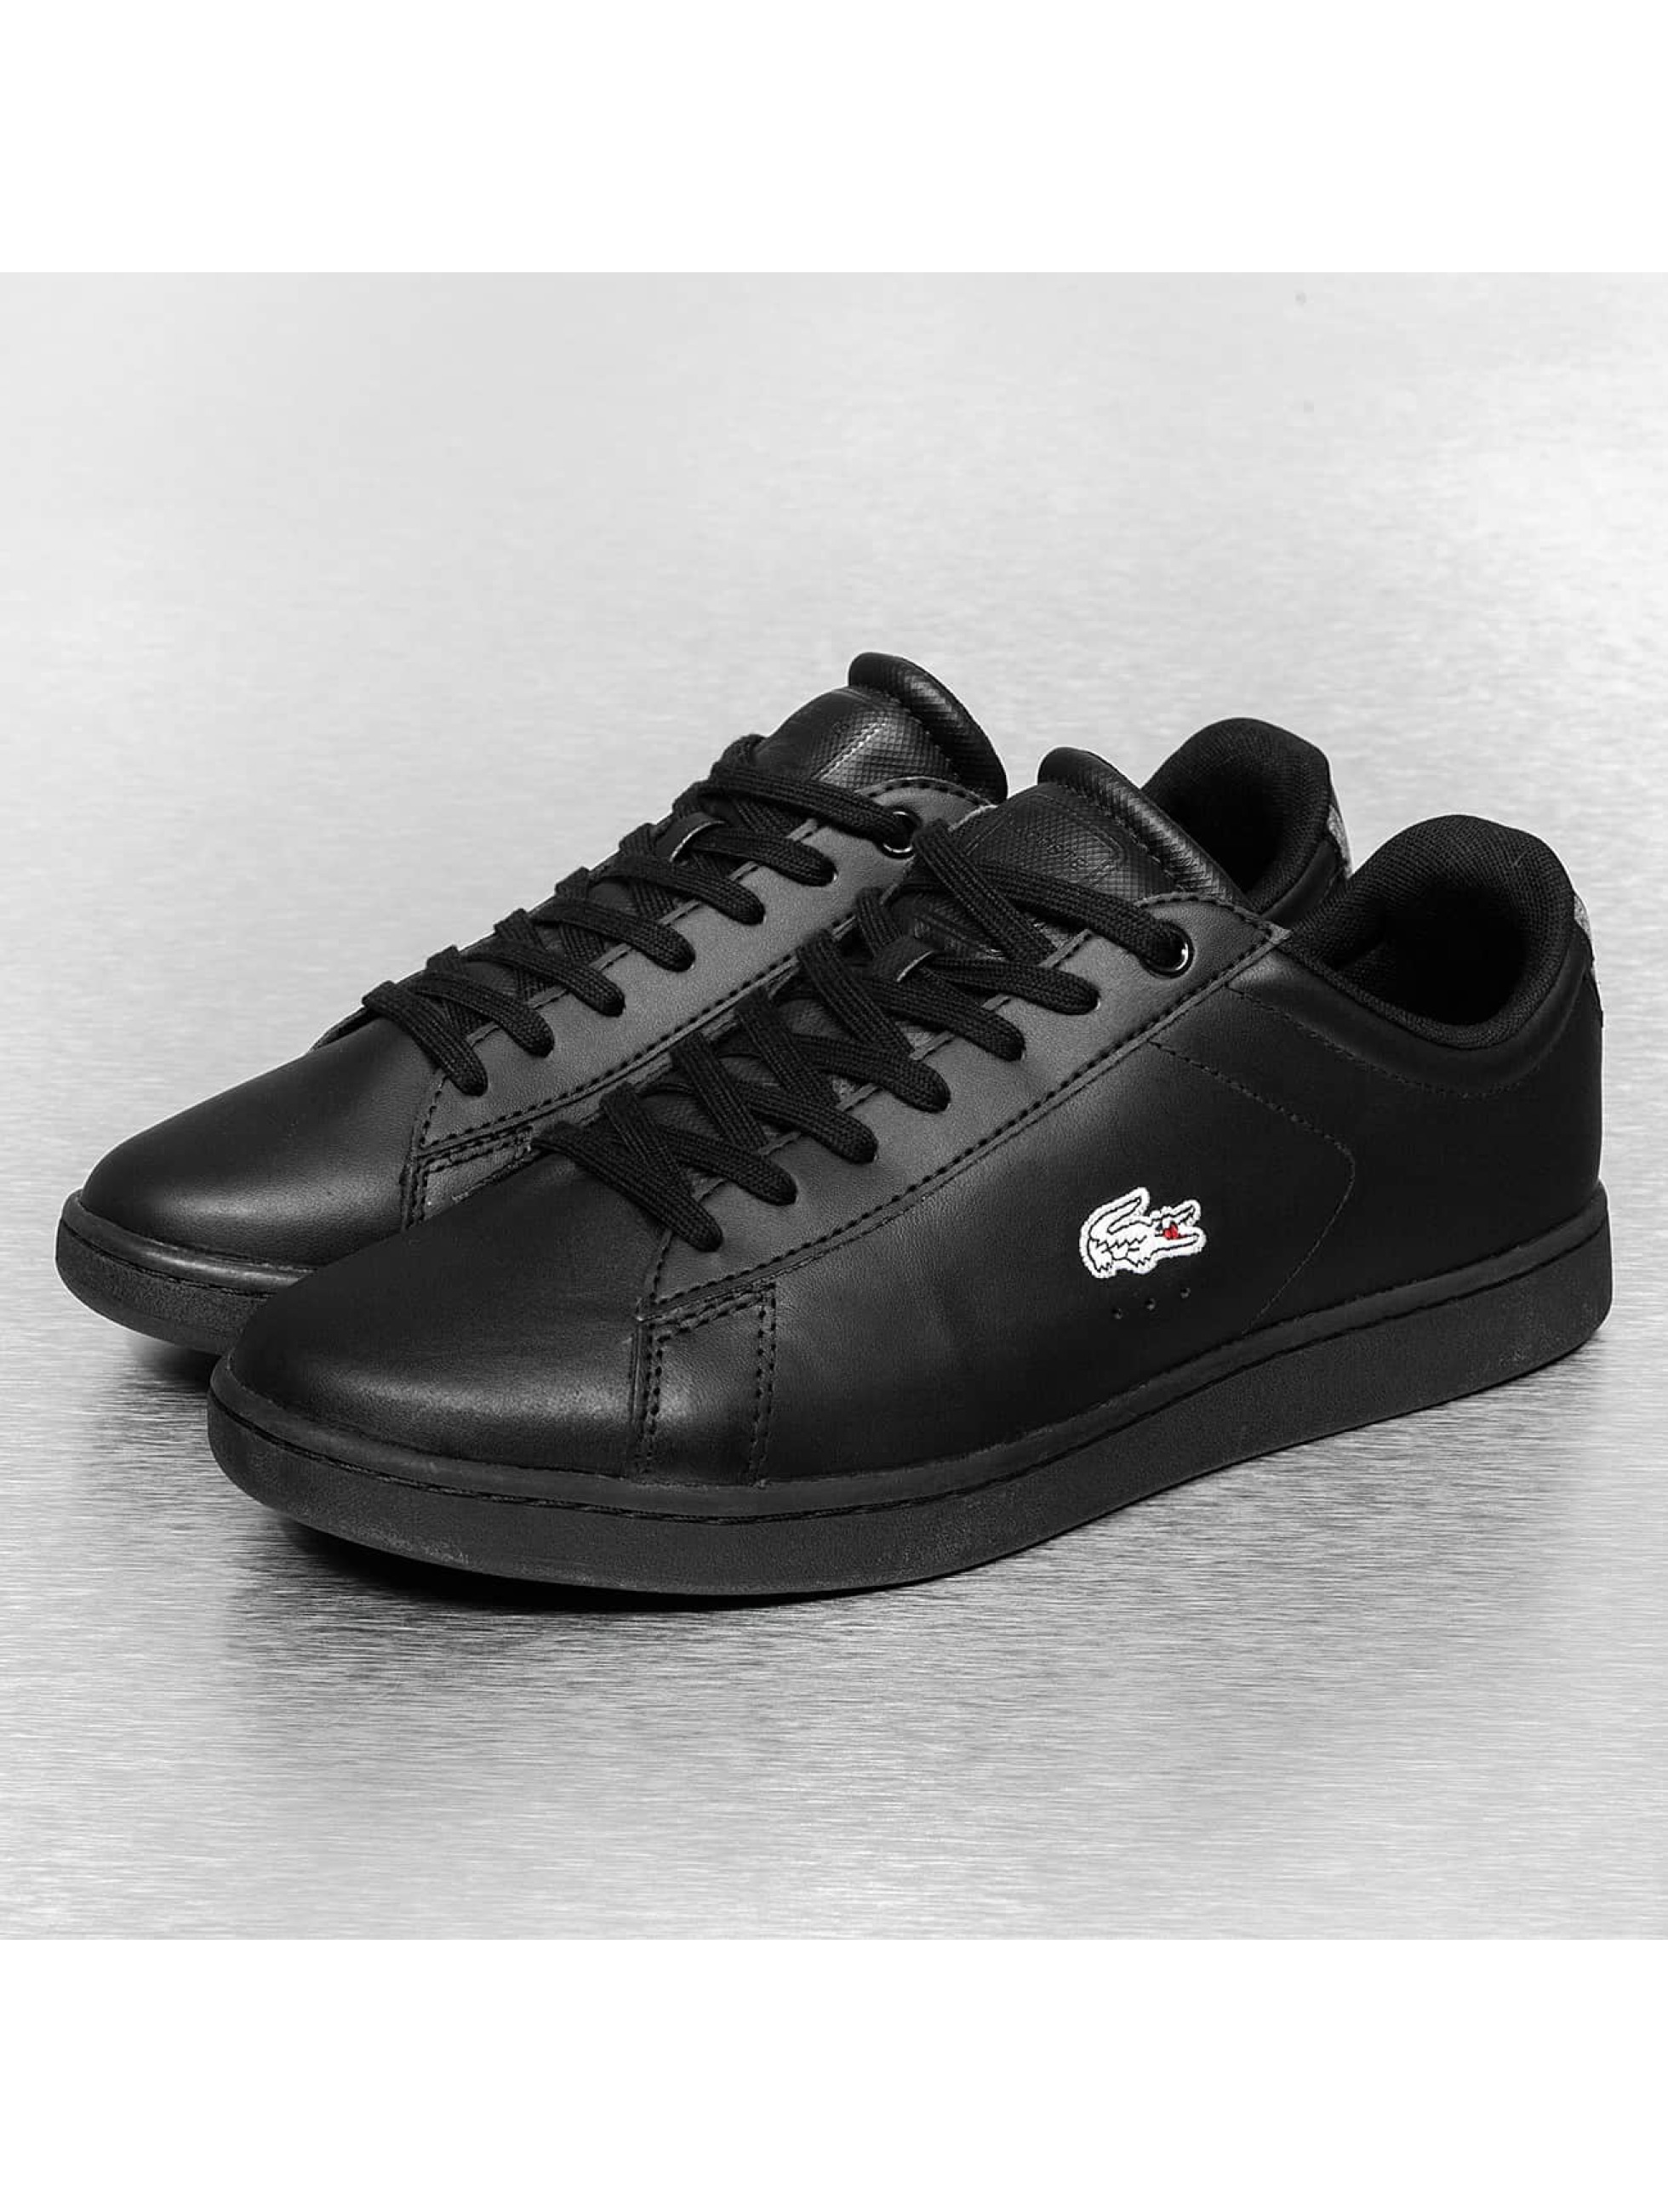 lacoste chaussures baskets carnaby evo wmp spm en noir 208266. Black Bedroom Furniture Sets. Home Design Ideas